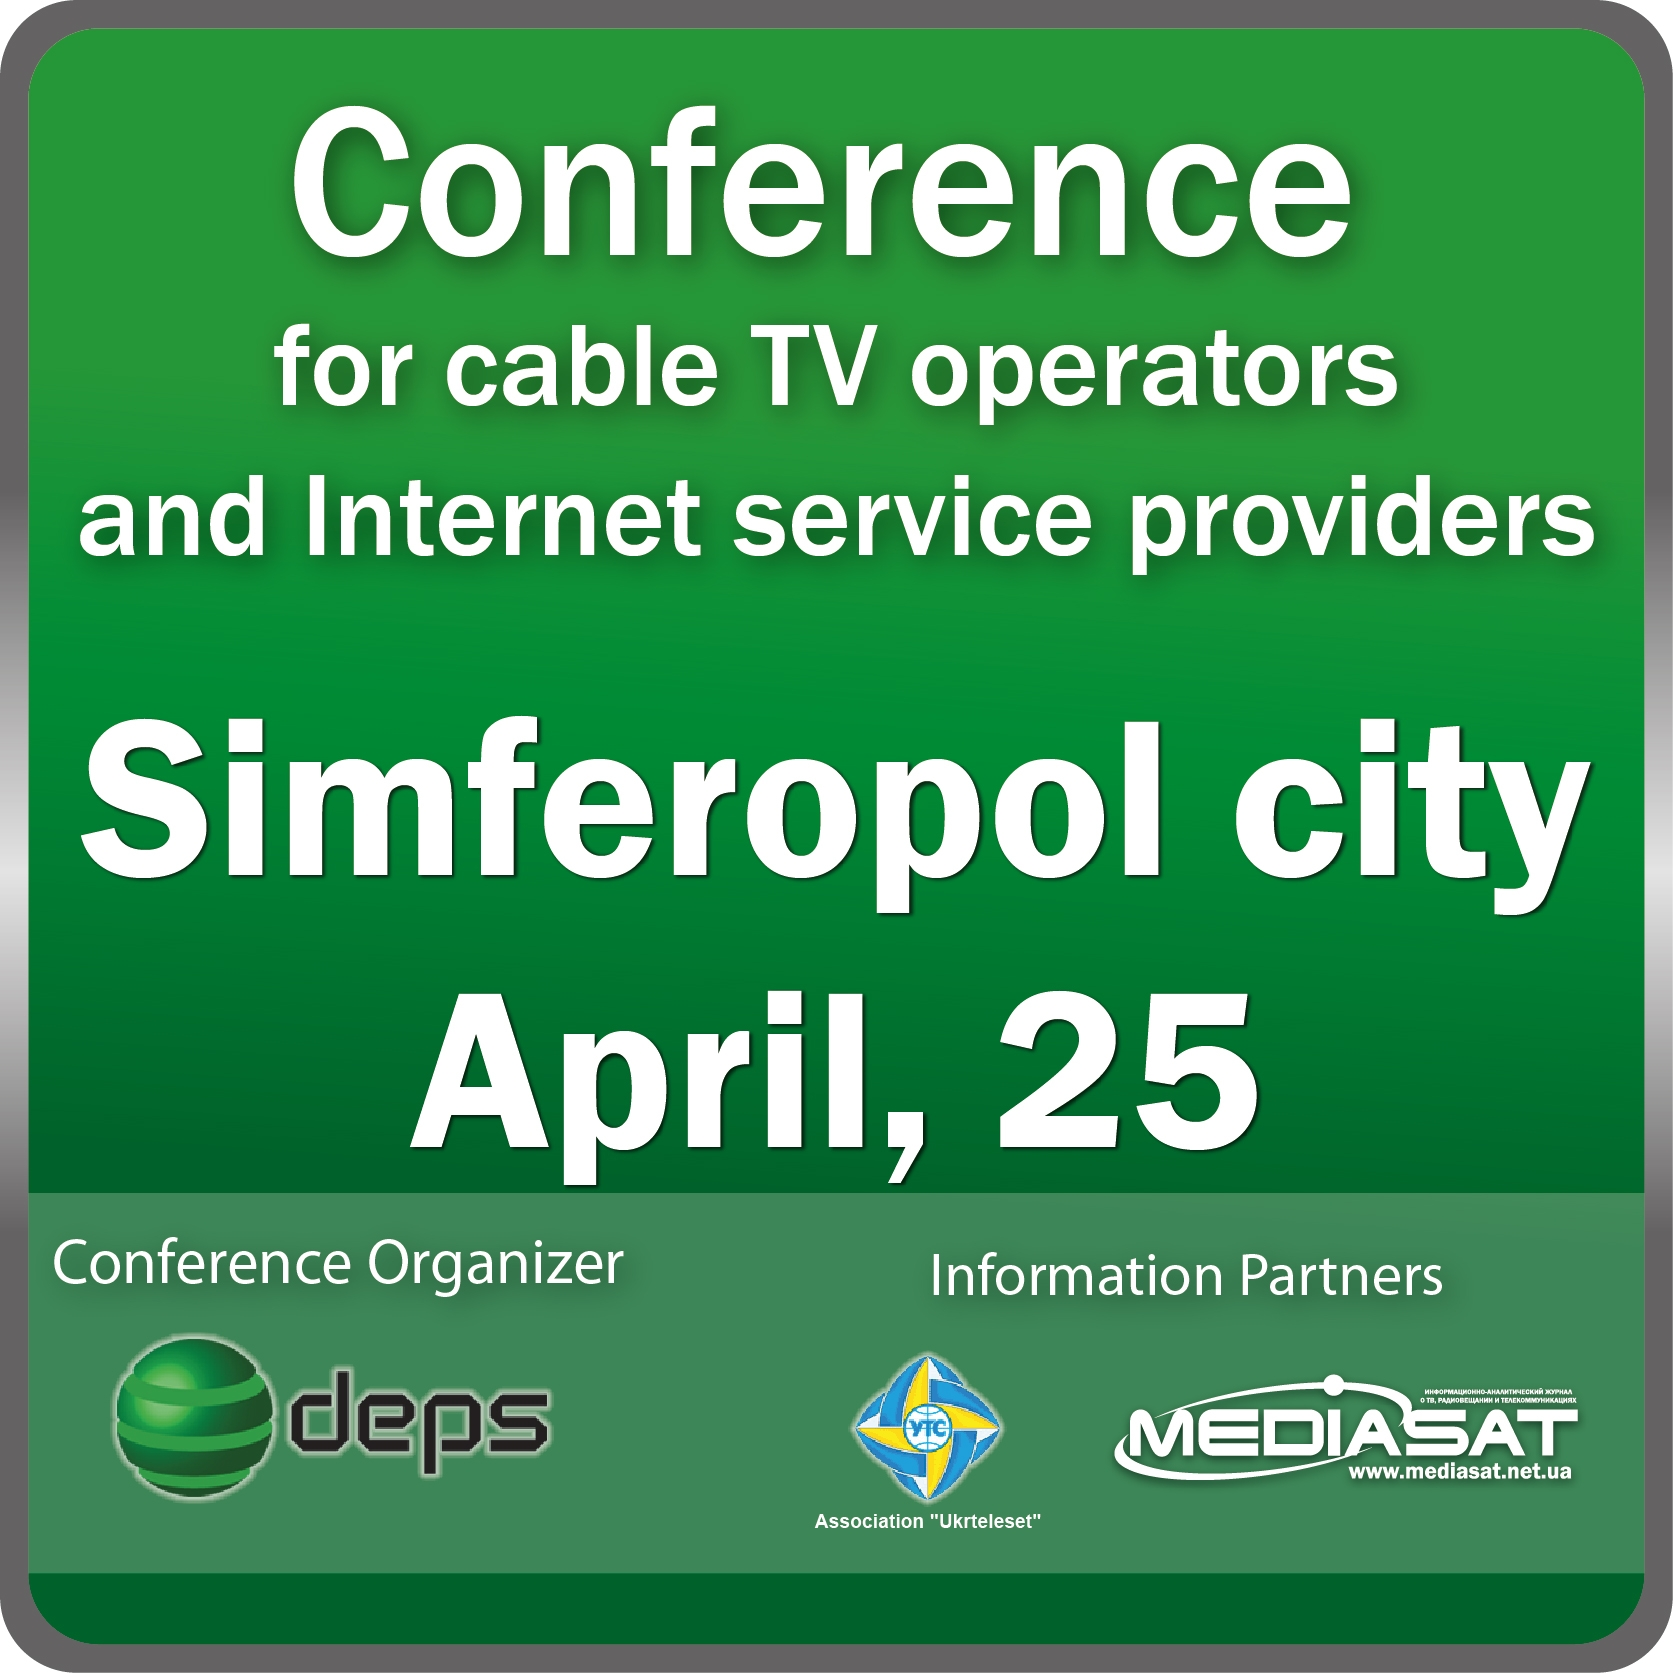 Wellcome to the conference in Simferopol city! (Registration is completed)